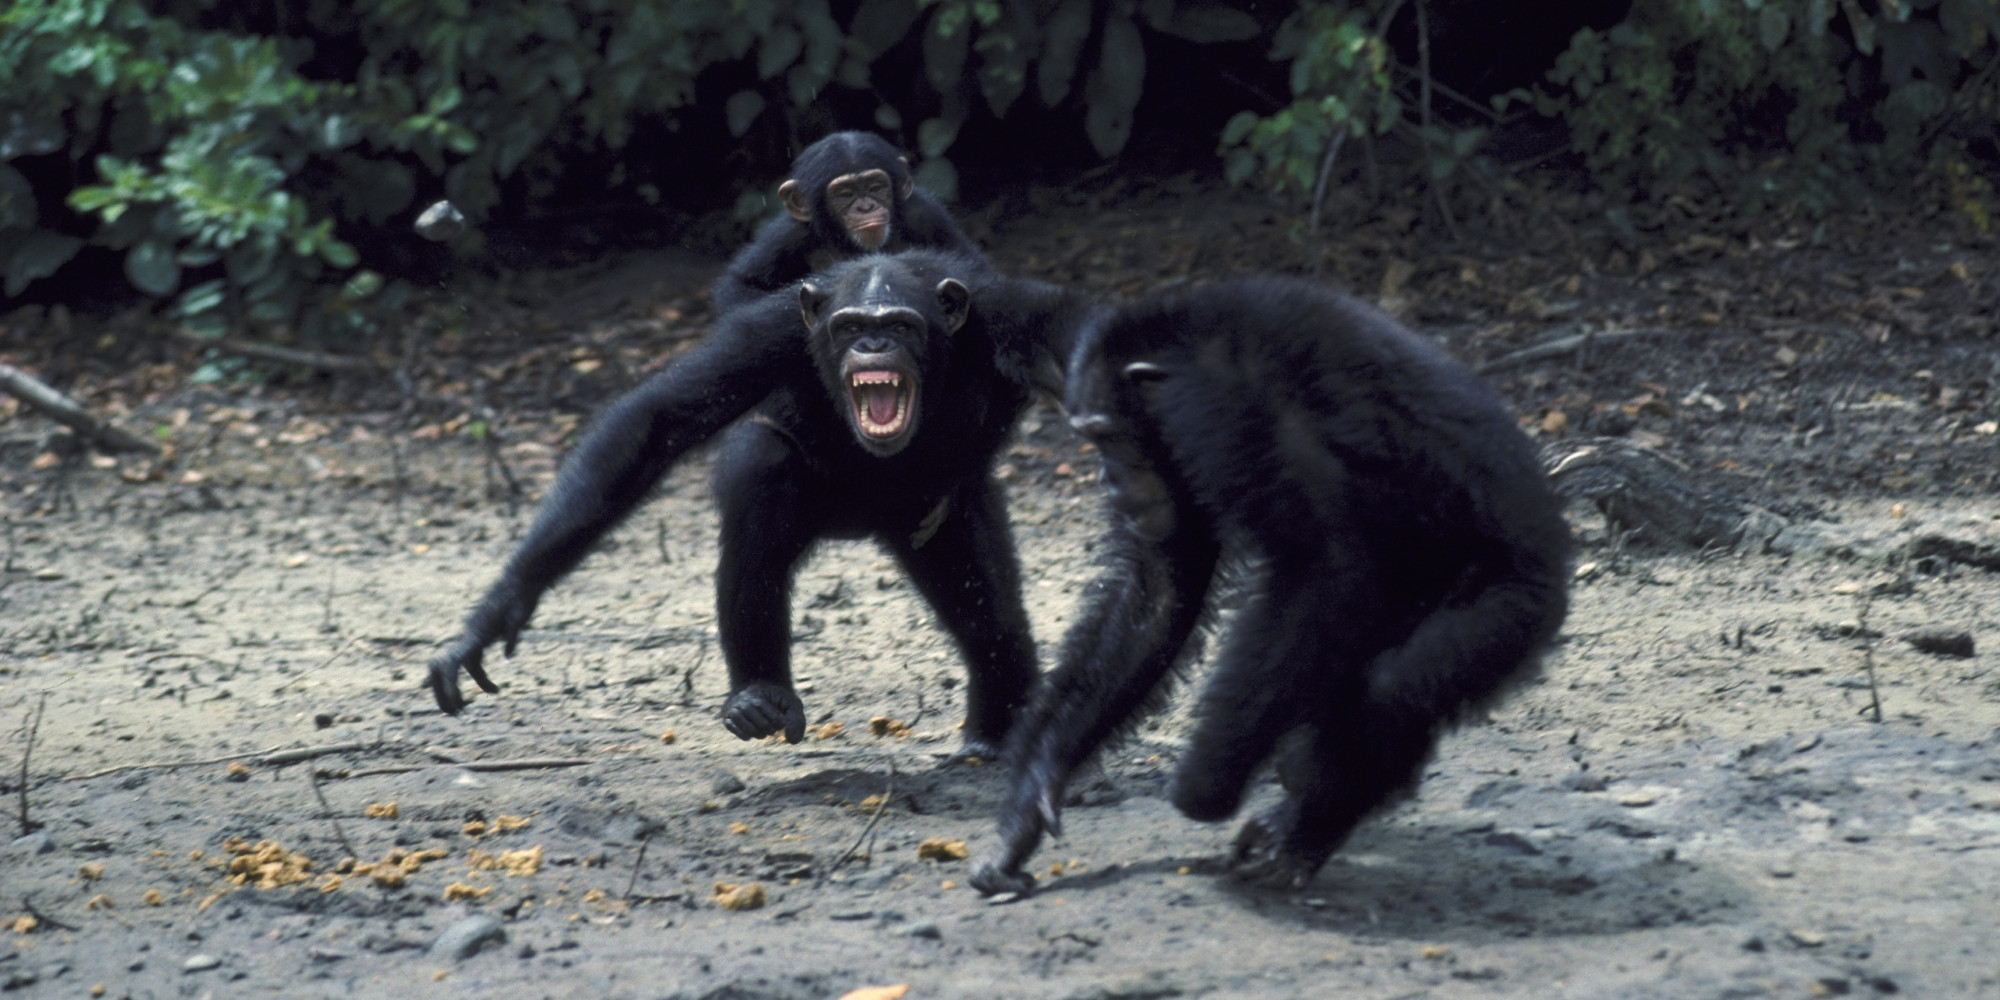 Chimpanzee pictures chimpanzees are all black but - Chimps May Look Cute But Controversial New Study Says They Re Natural Born Killers Huffpost